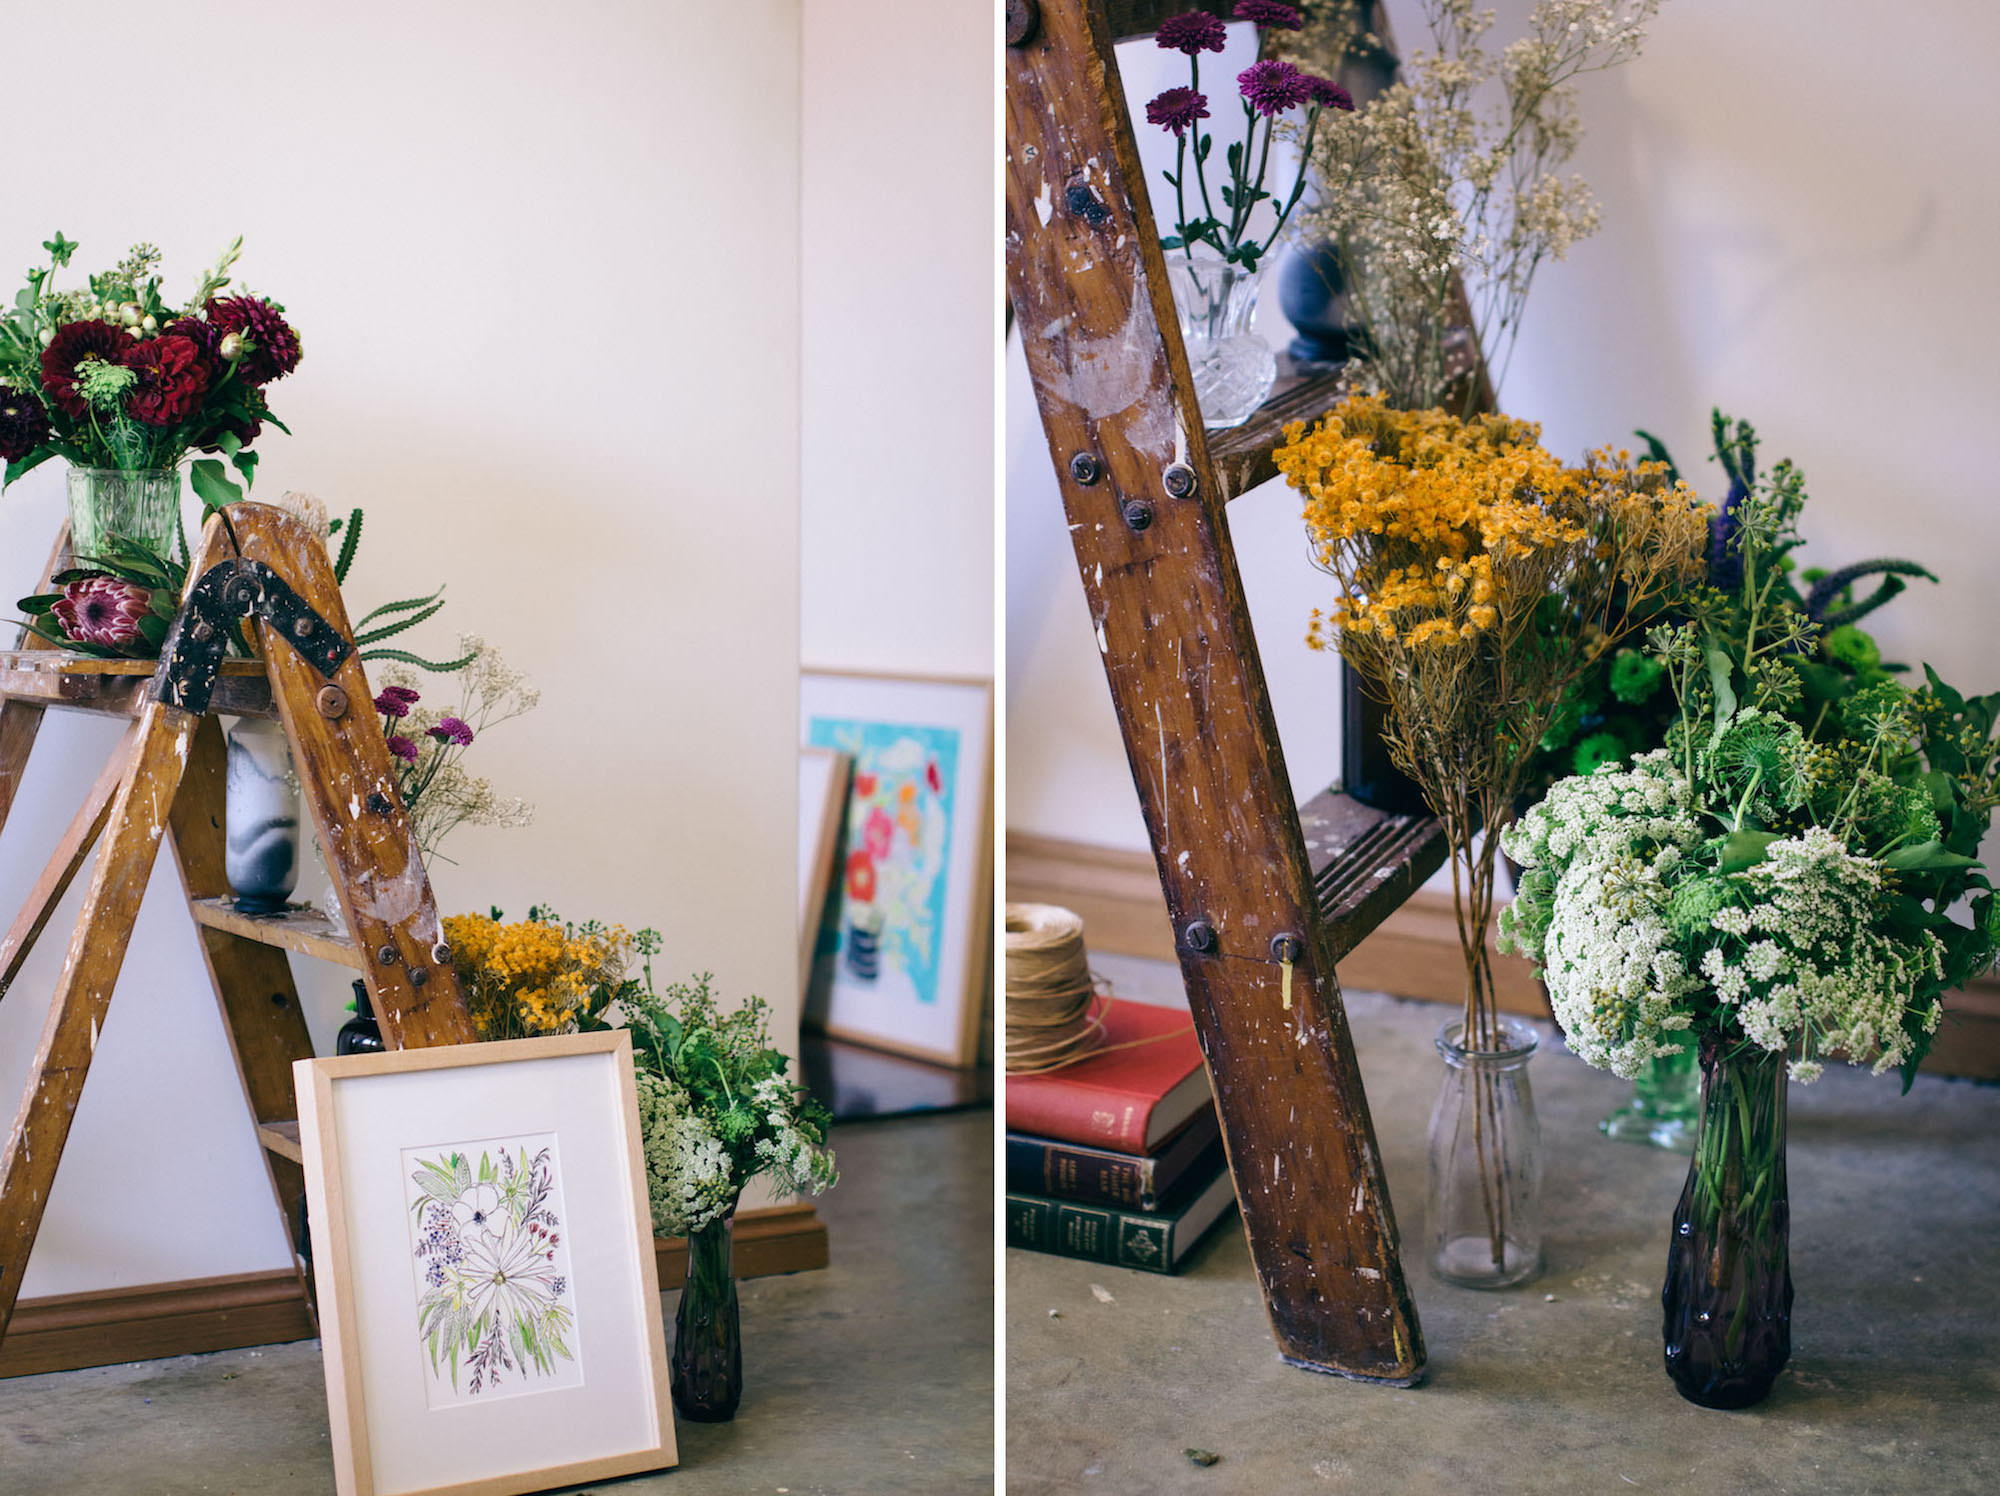 Creative Business Photography Ashleigh Perrella Artist Florist 14